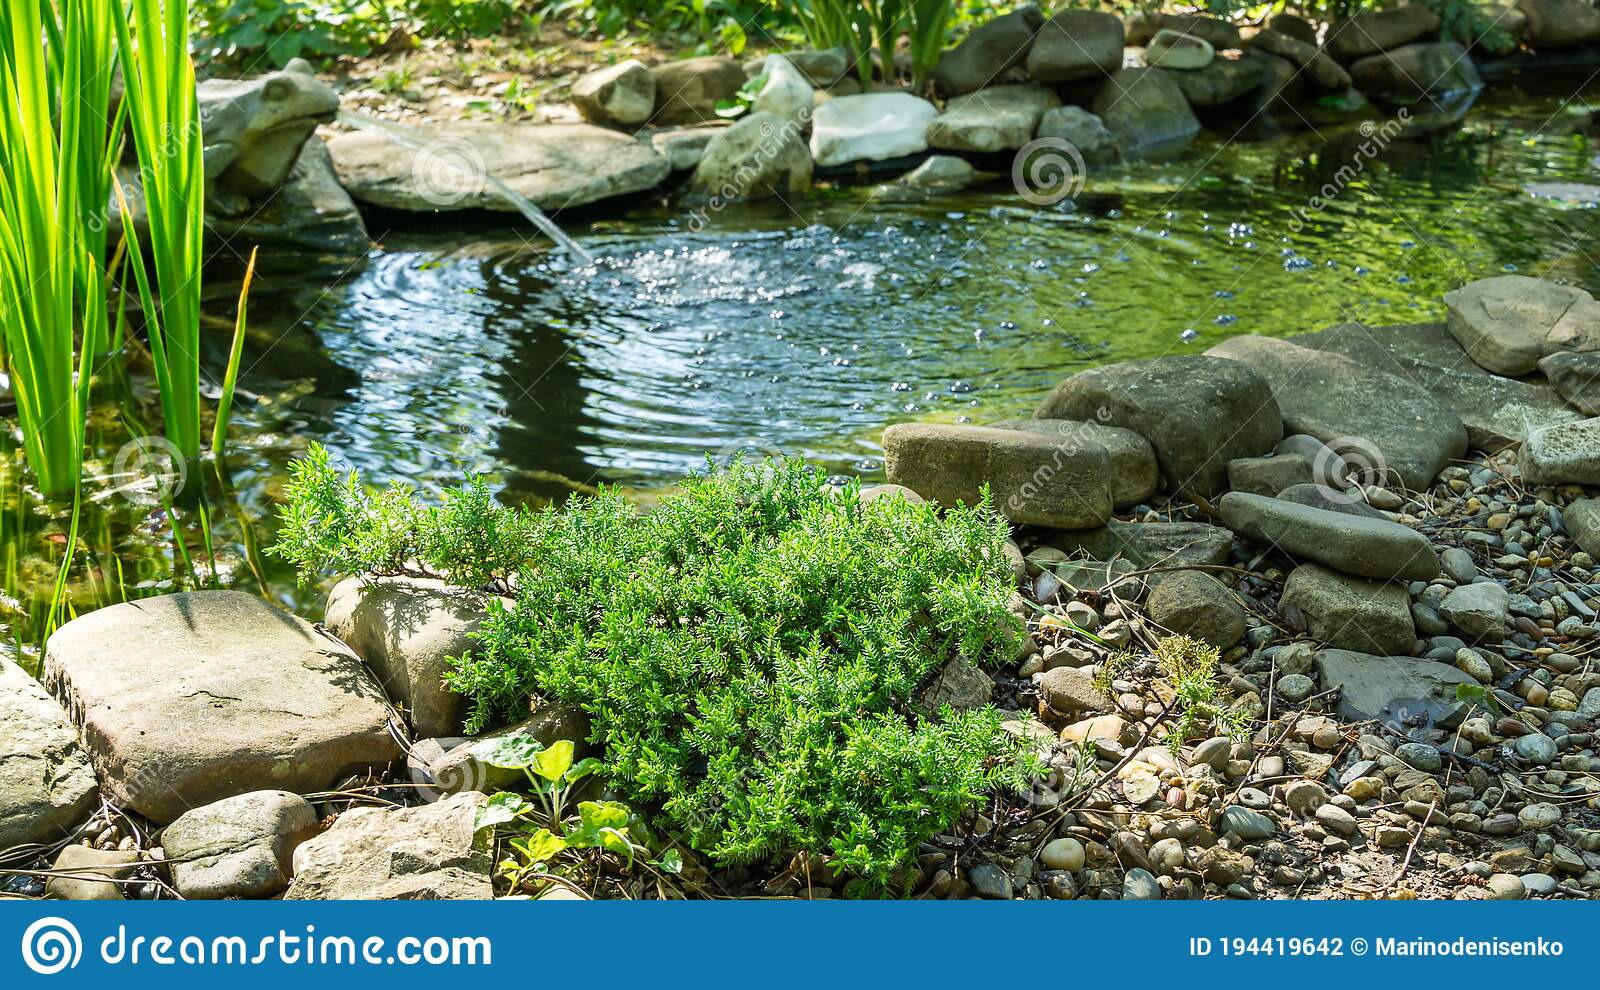 14 756 Small Garden Pond Photos Free Royalty Free Stock Photos From Dreamstime